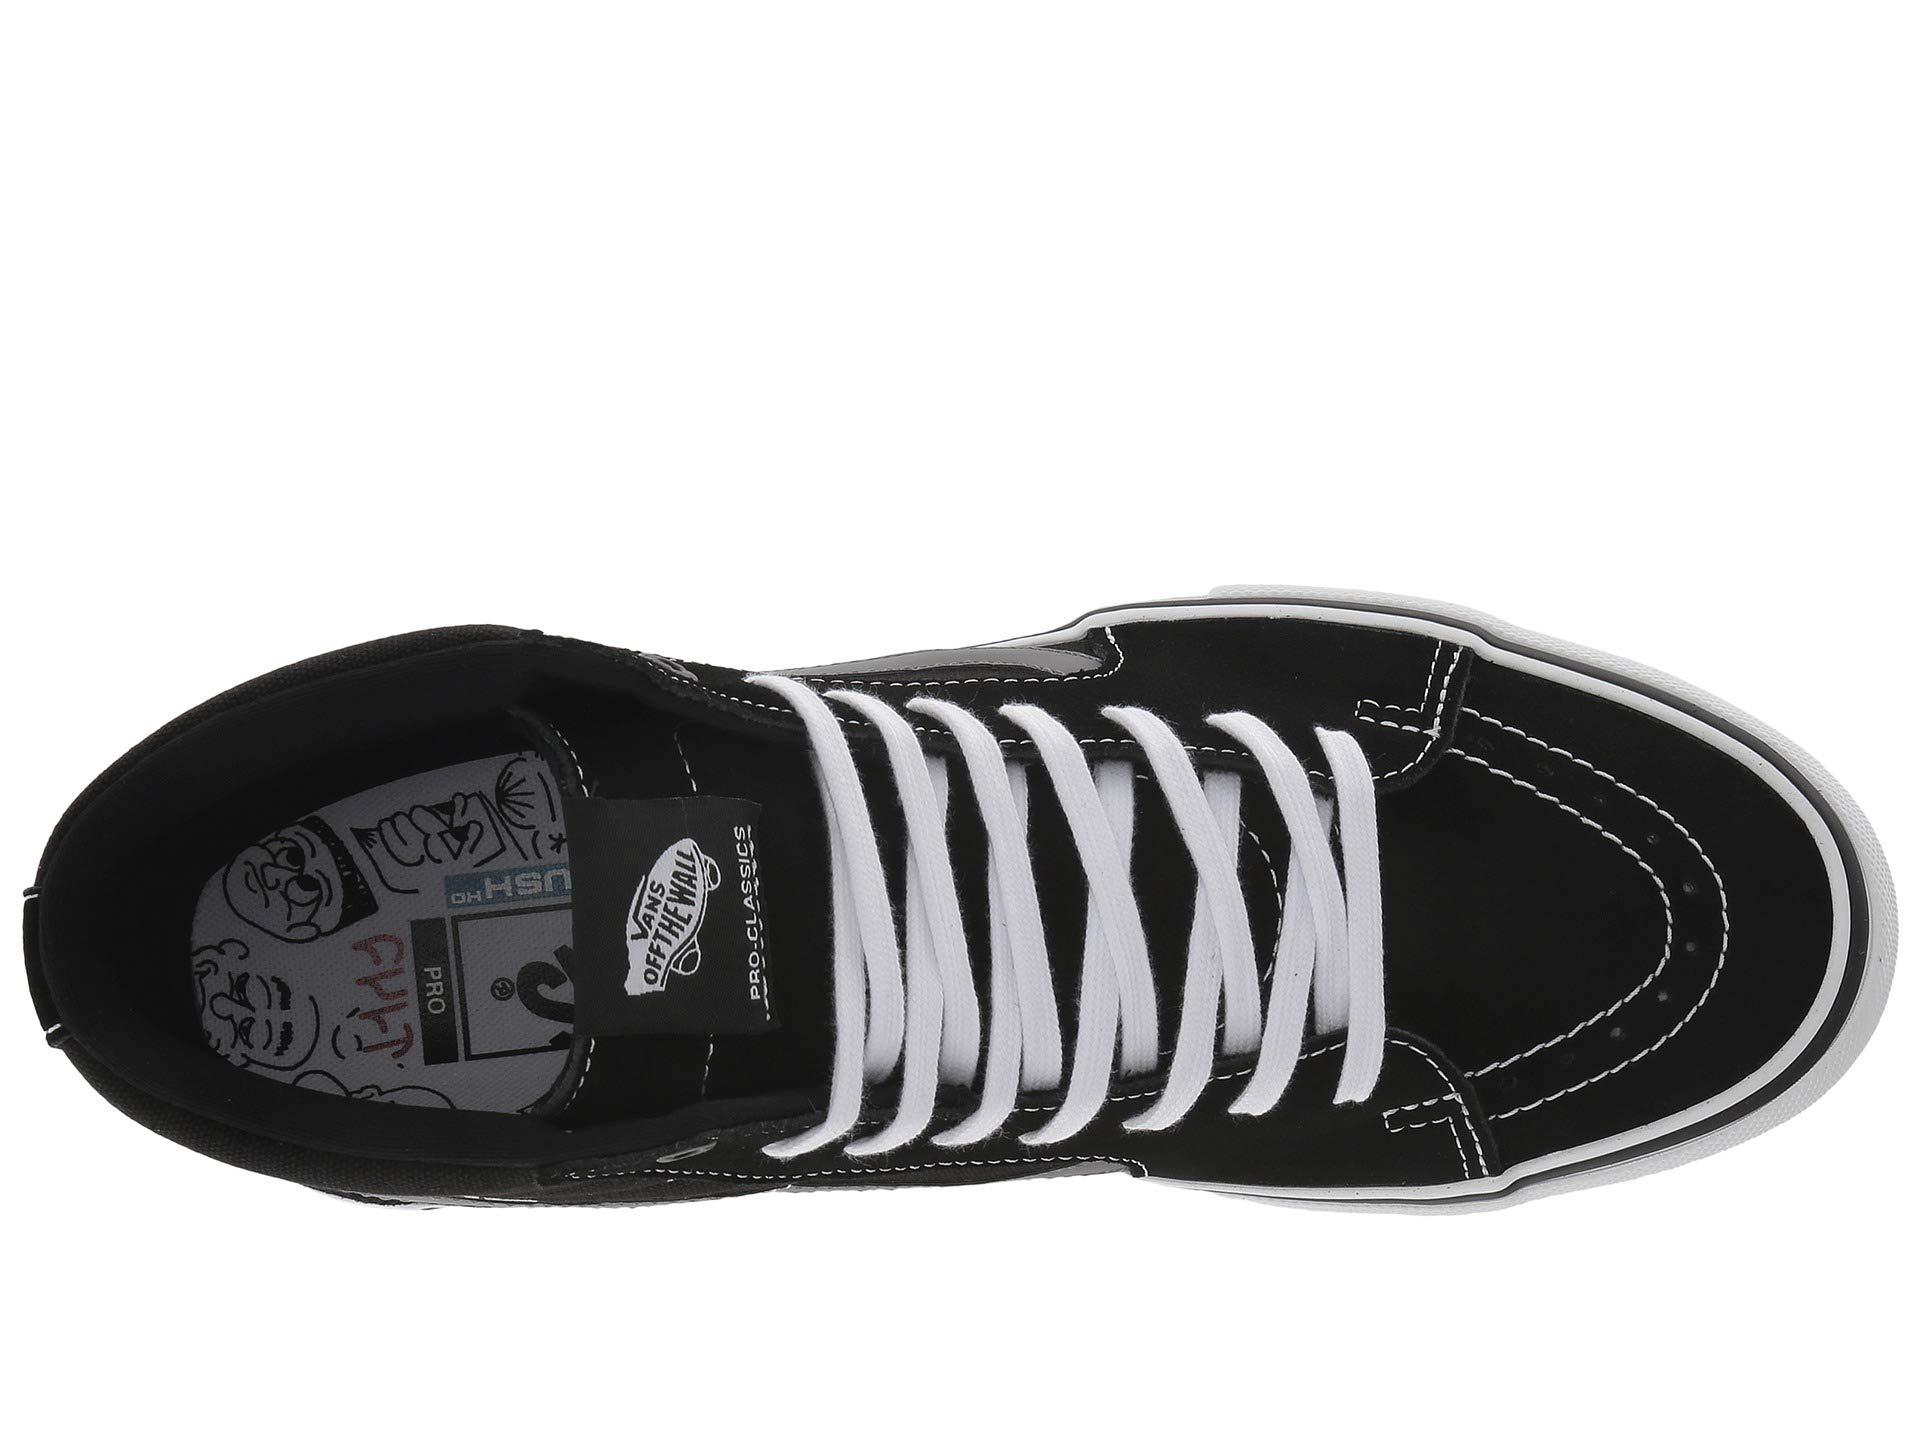 ea606b4b72 Lyst - Vans Sk8-hitm Pro ((checkerboard) Smoke violet Ice) Men s ...